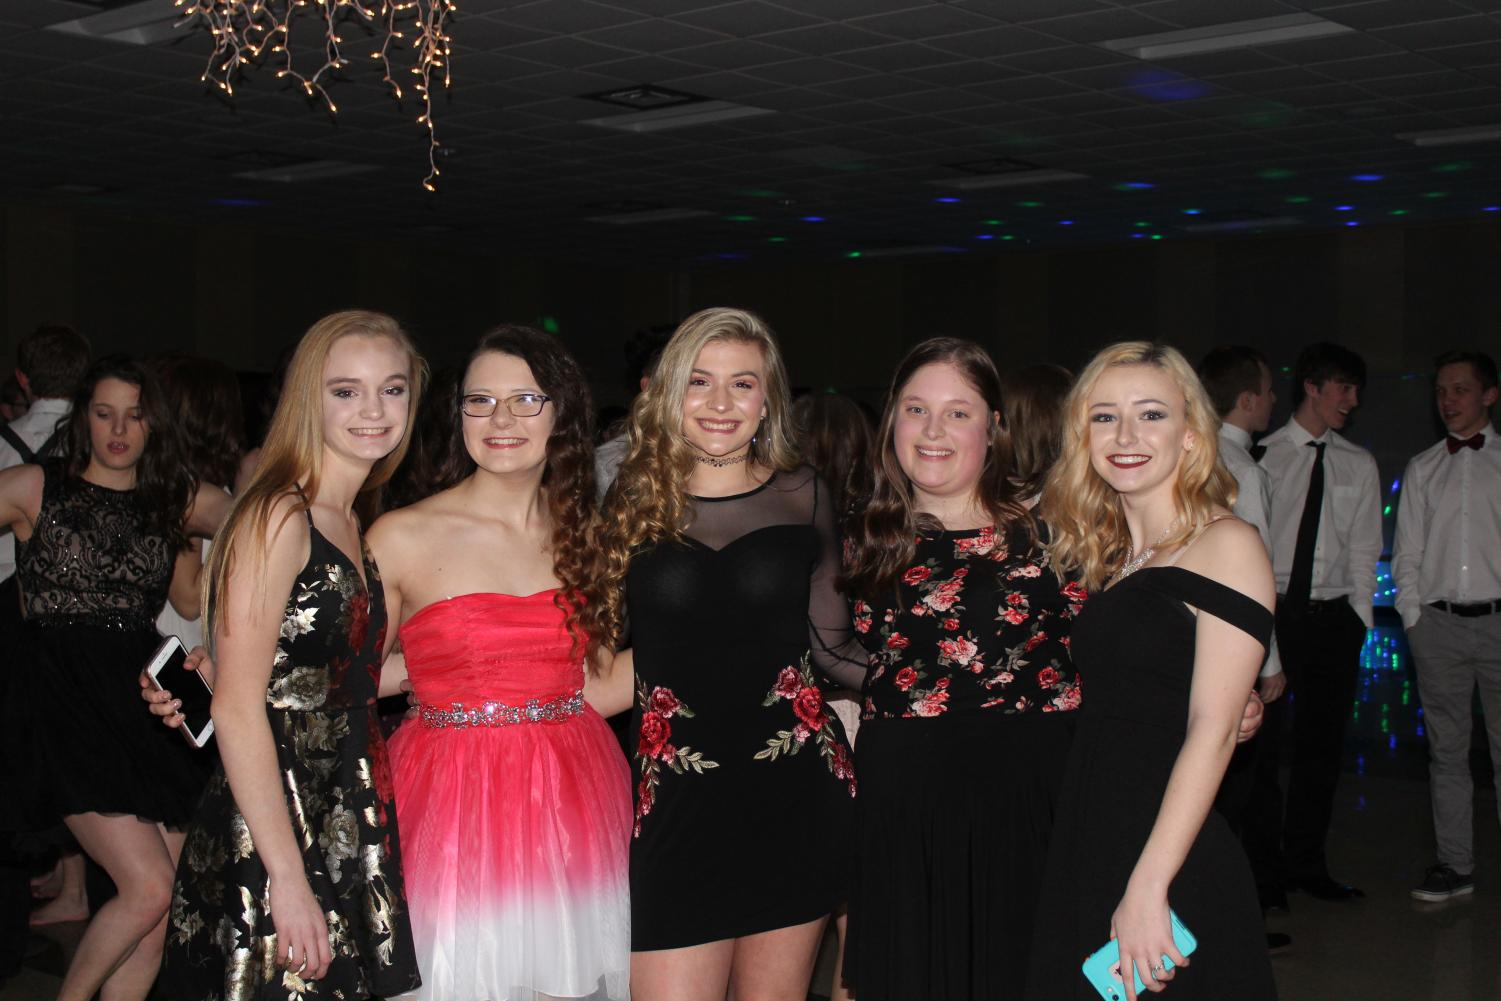 At the Sadie Hawkins dance, Tia Campbell (10), Victoria Hutchison (11), Mercedes Shank (11), Kristin Embly (11), and Jade Hornbaker (11) enjoy their time together.